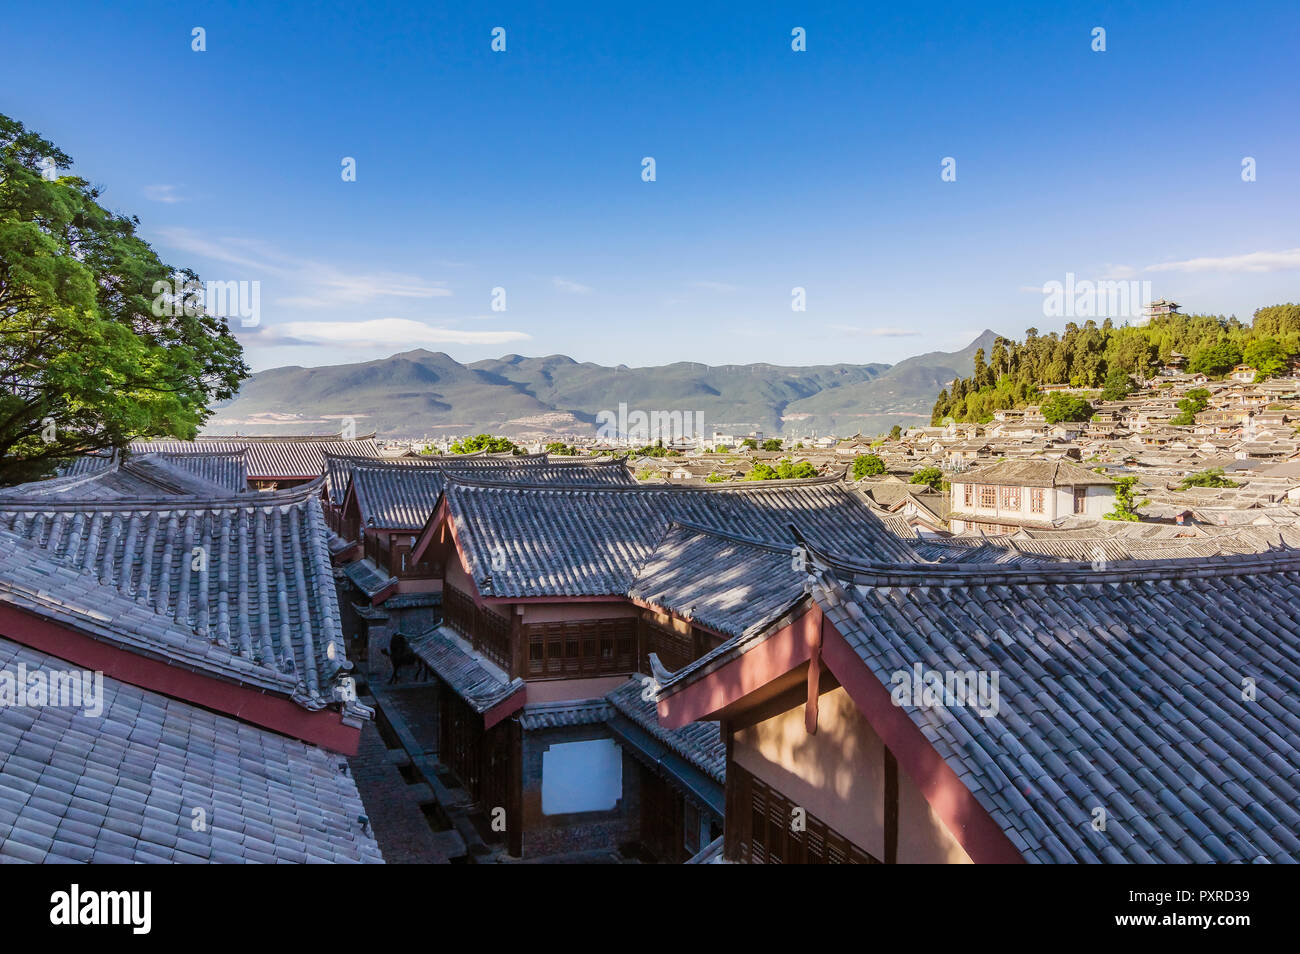 China, Yunnan, Lijiang, tiled roofs in the old town - Stock Image